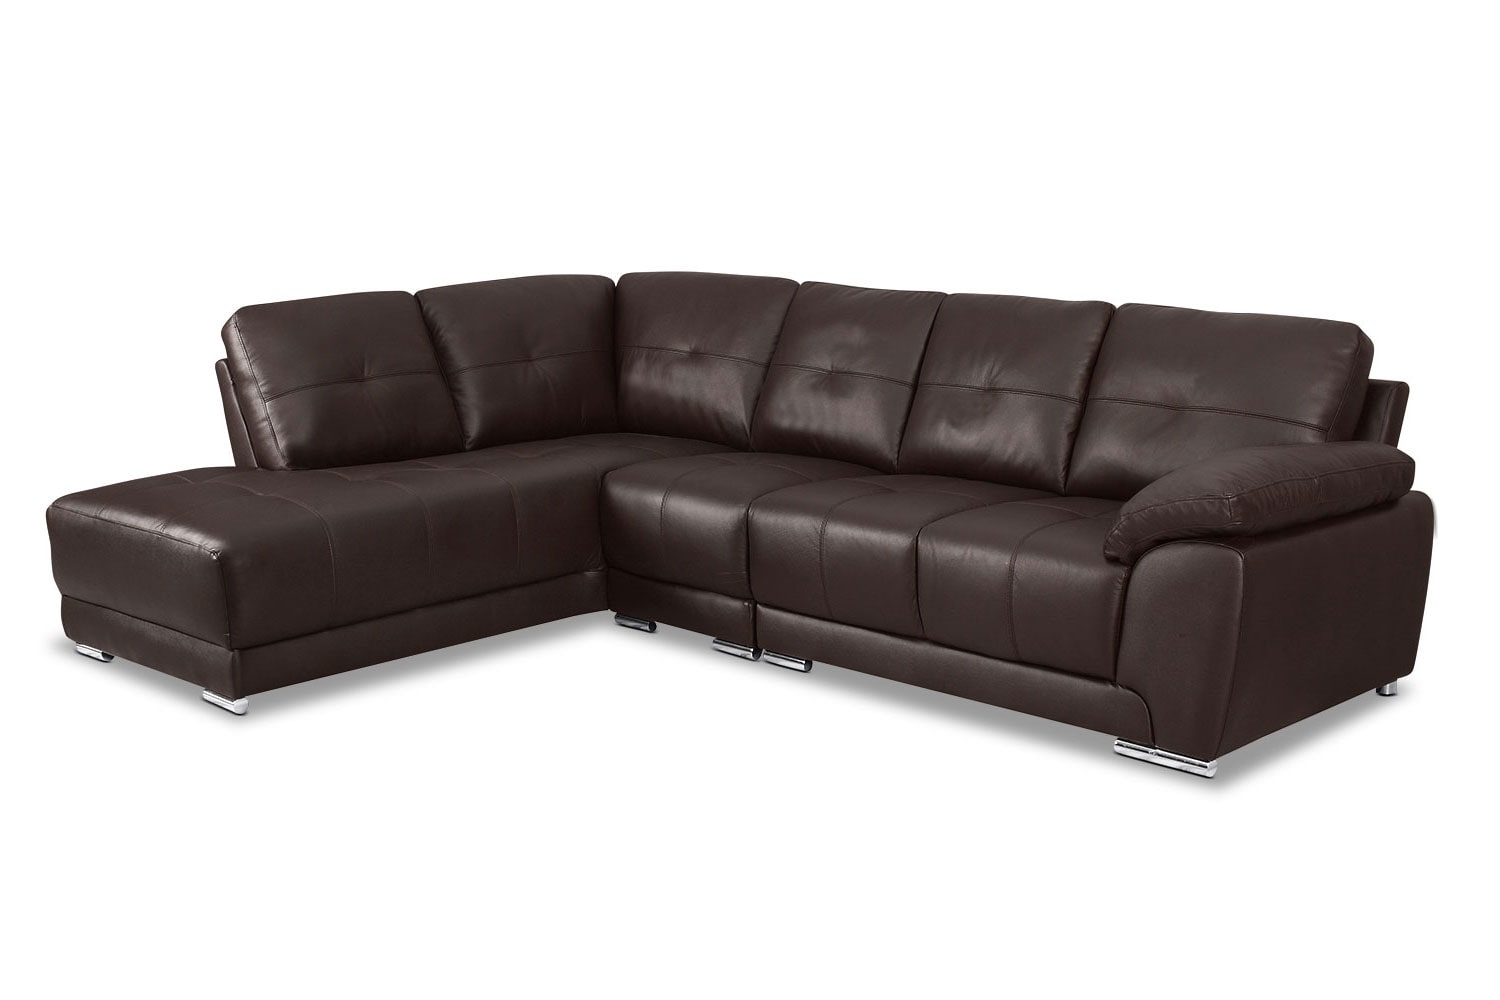 Rylee 3 Piece Genuine Leather Left Facing Sectional